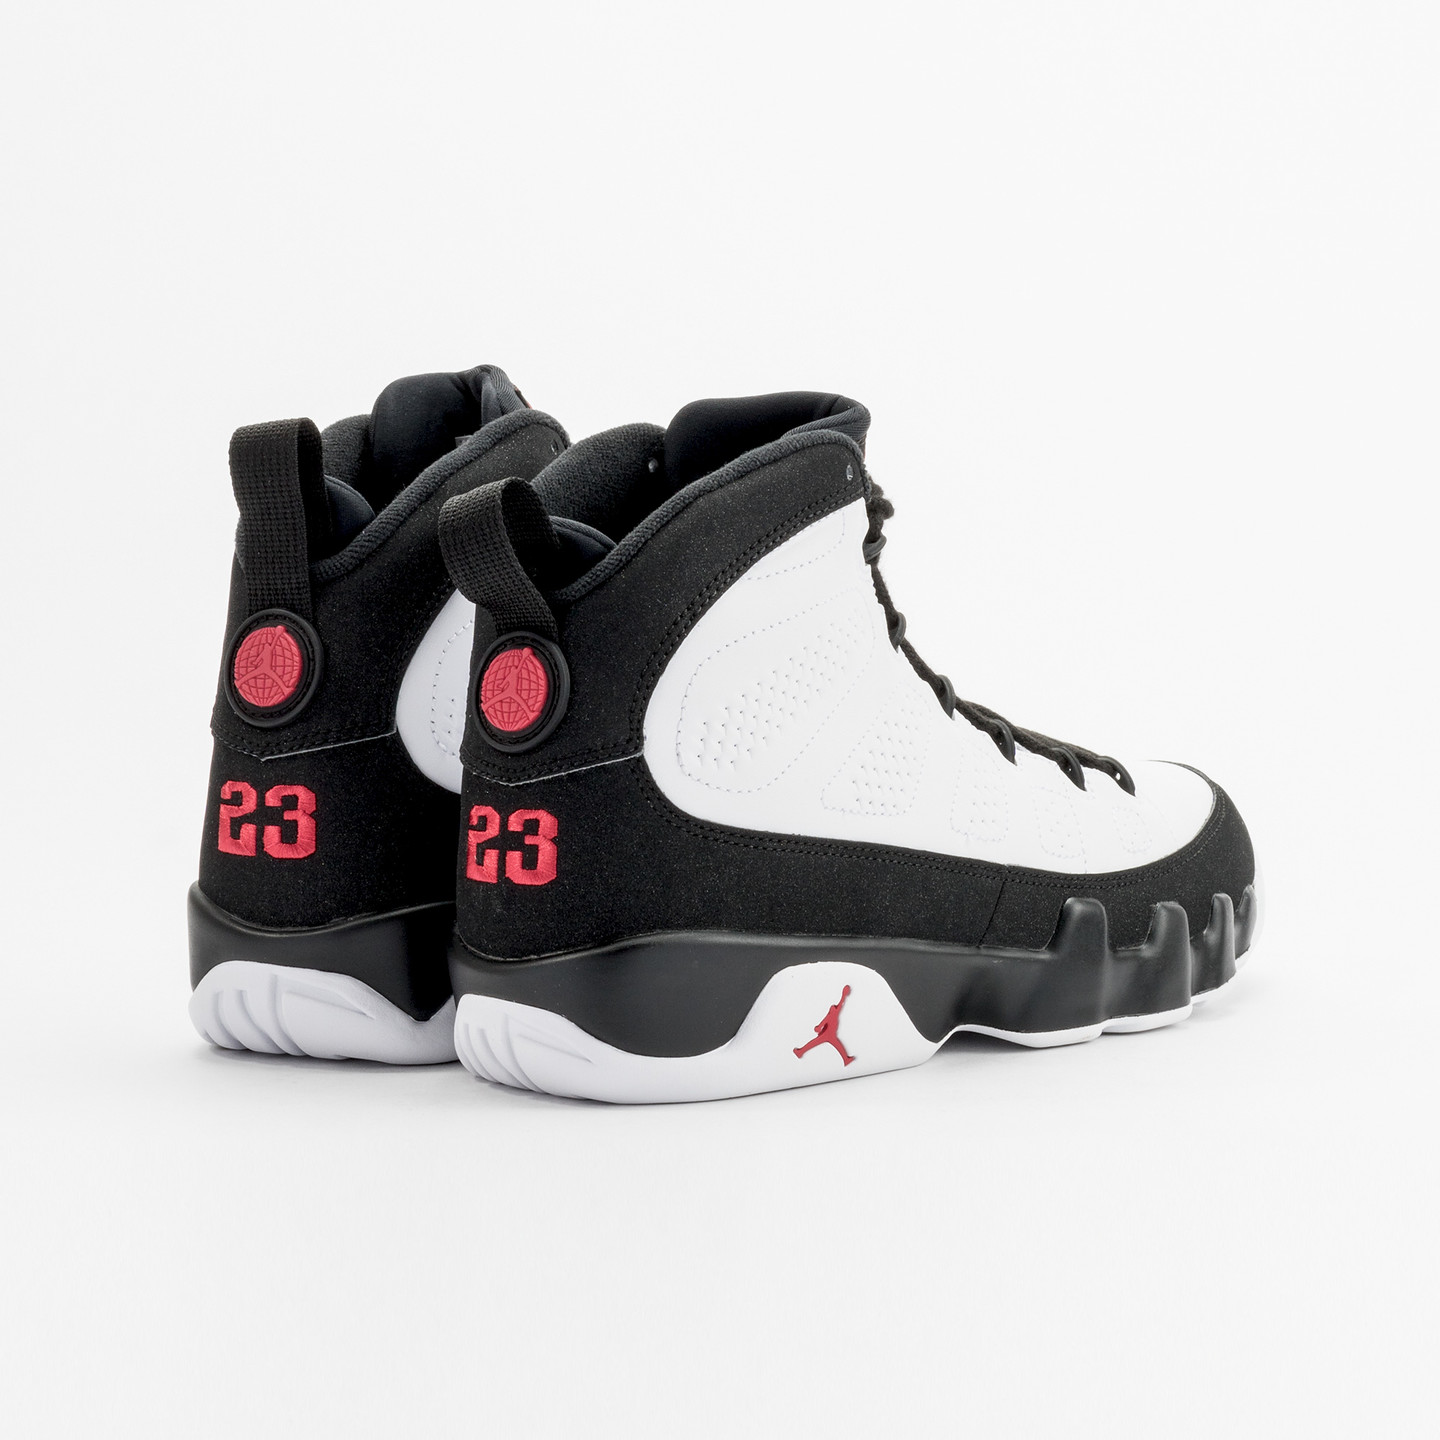 Jordan Air Jordan 9 Retro OG White / True Red / Black 302370-112